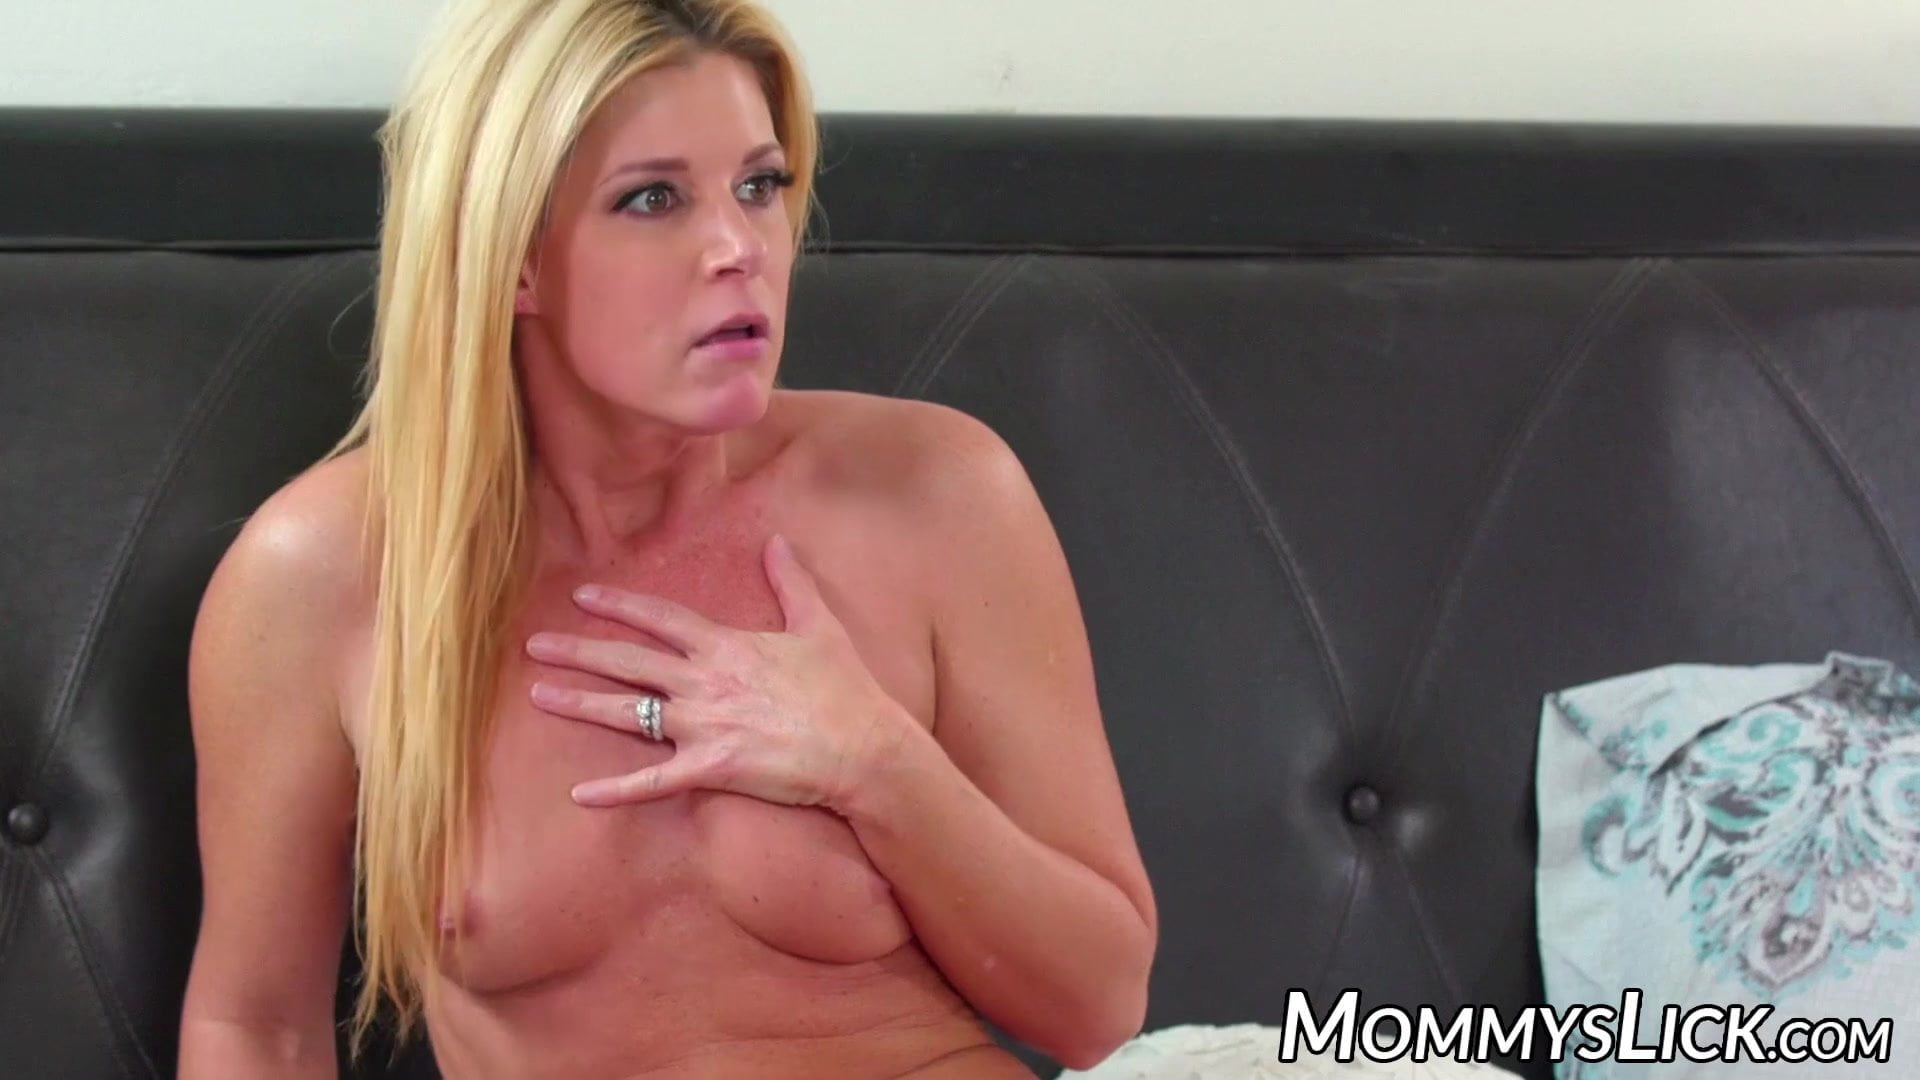 Lusty stepmom eats out daughters pussy xxx image hot